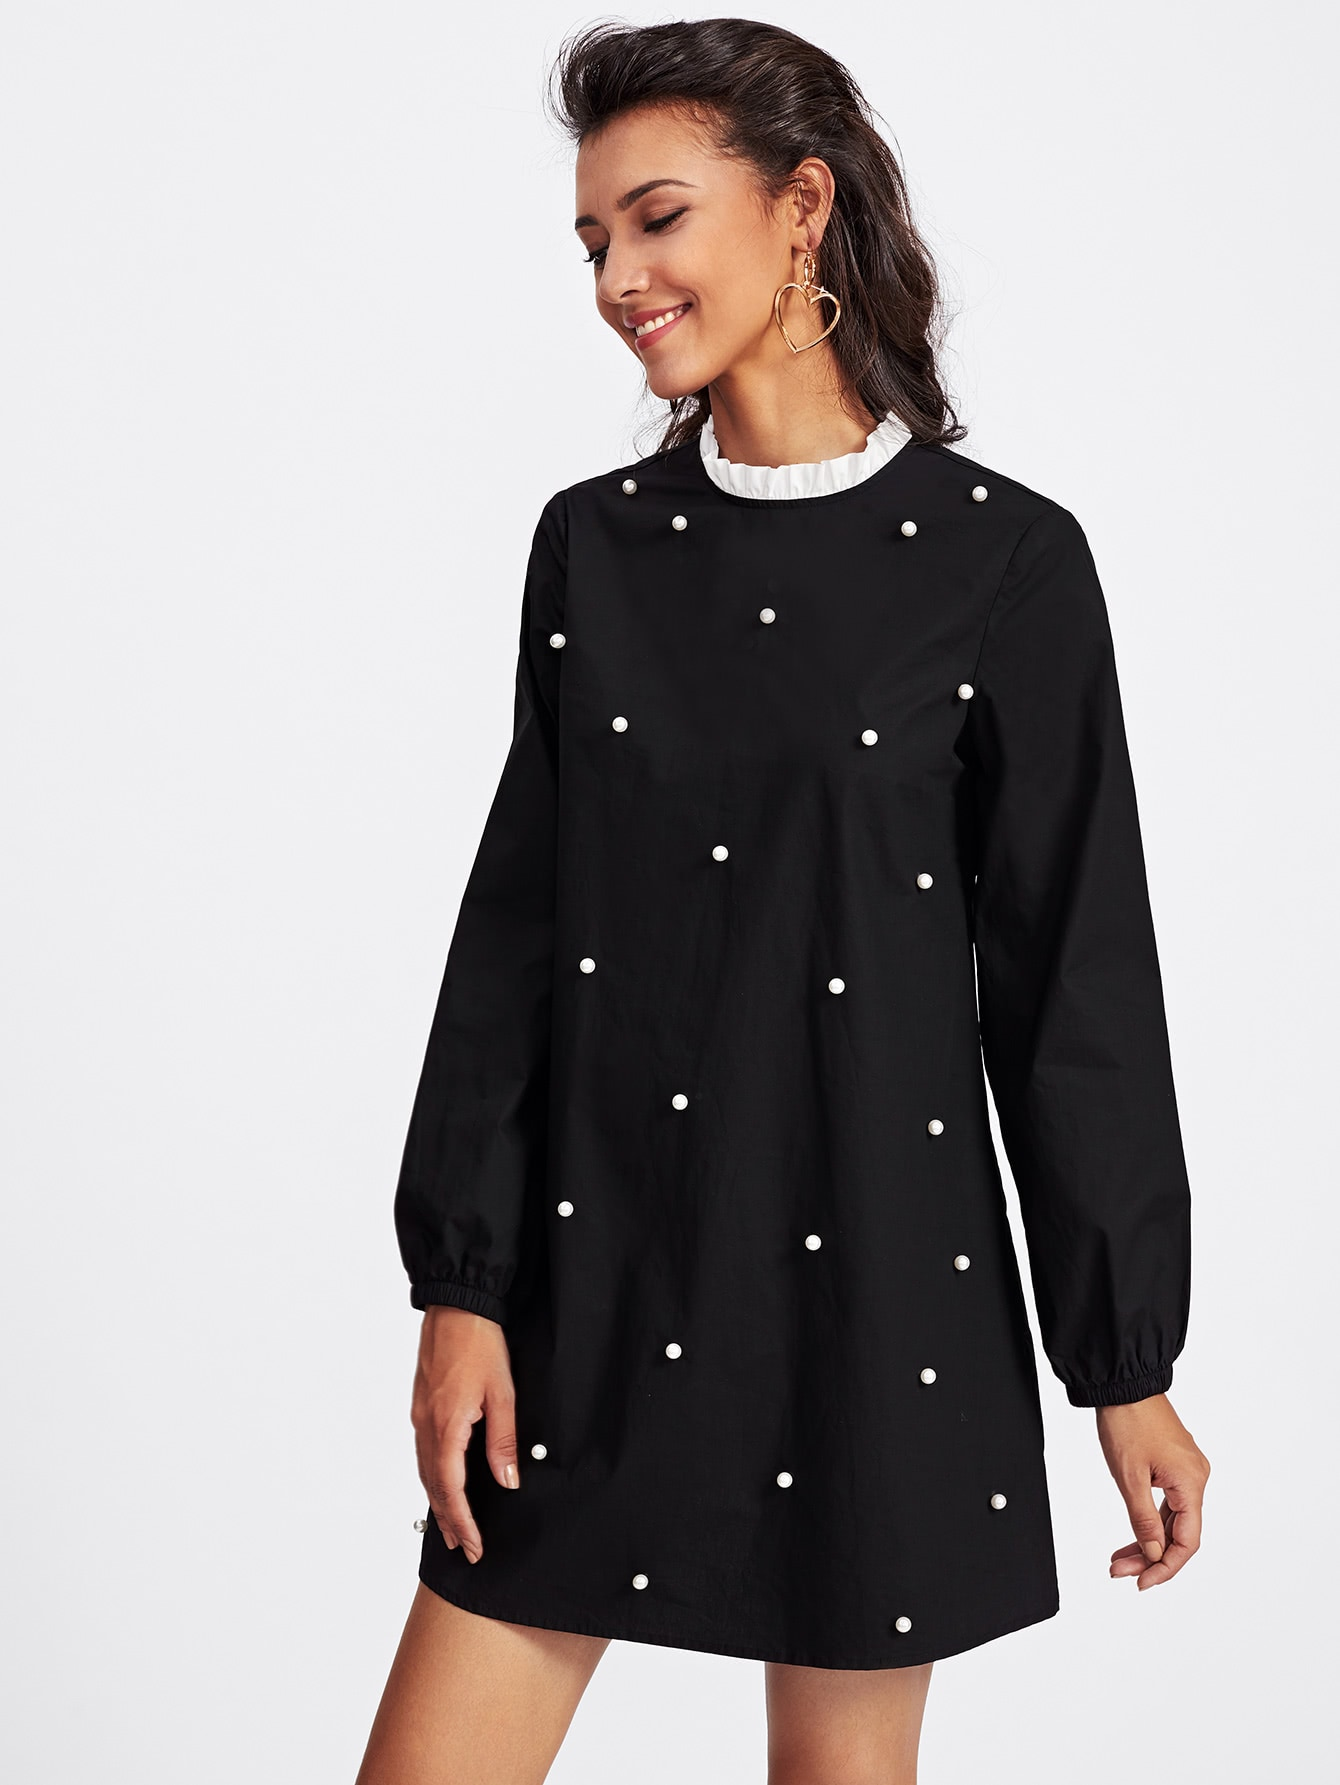 Contrast Frill Neck Pearl Embellished Dress frill layered pearl detail sweatshirt dress